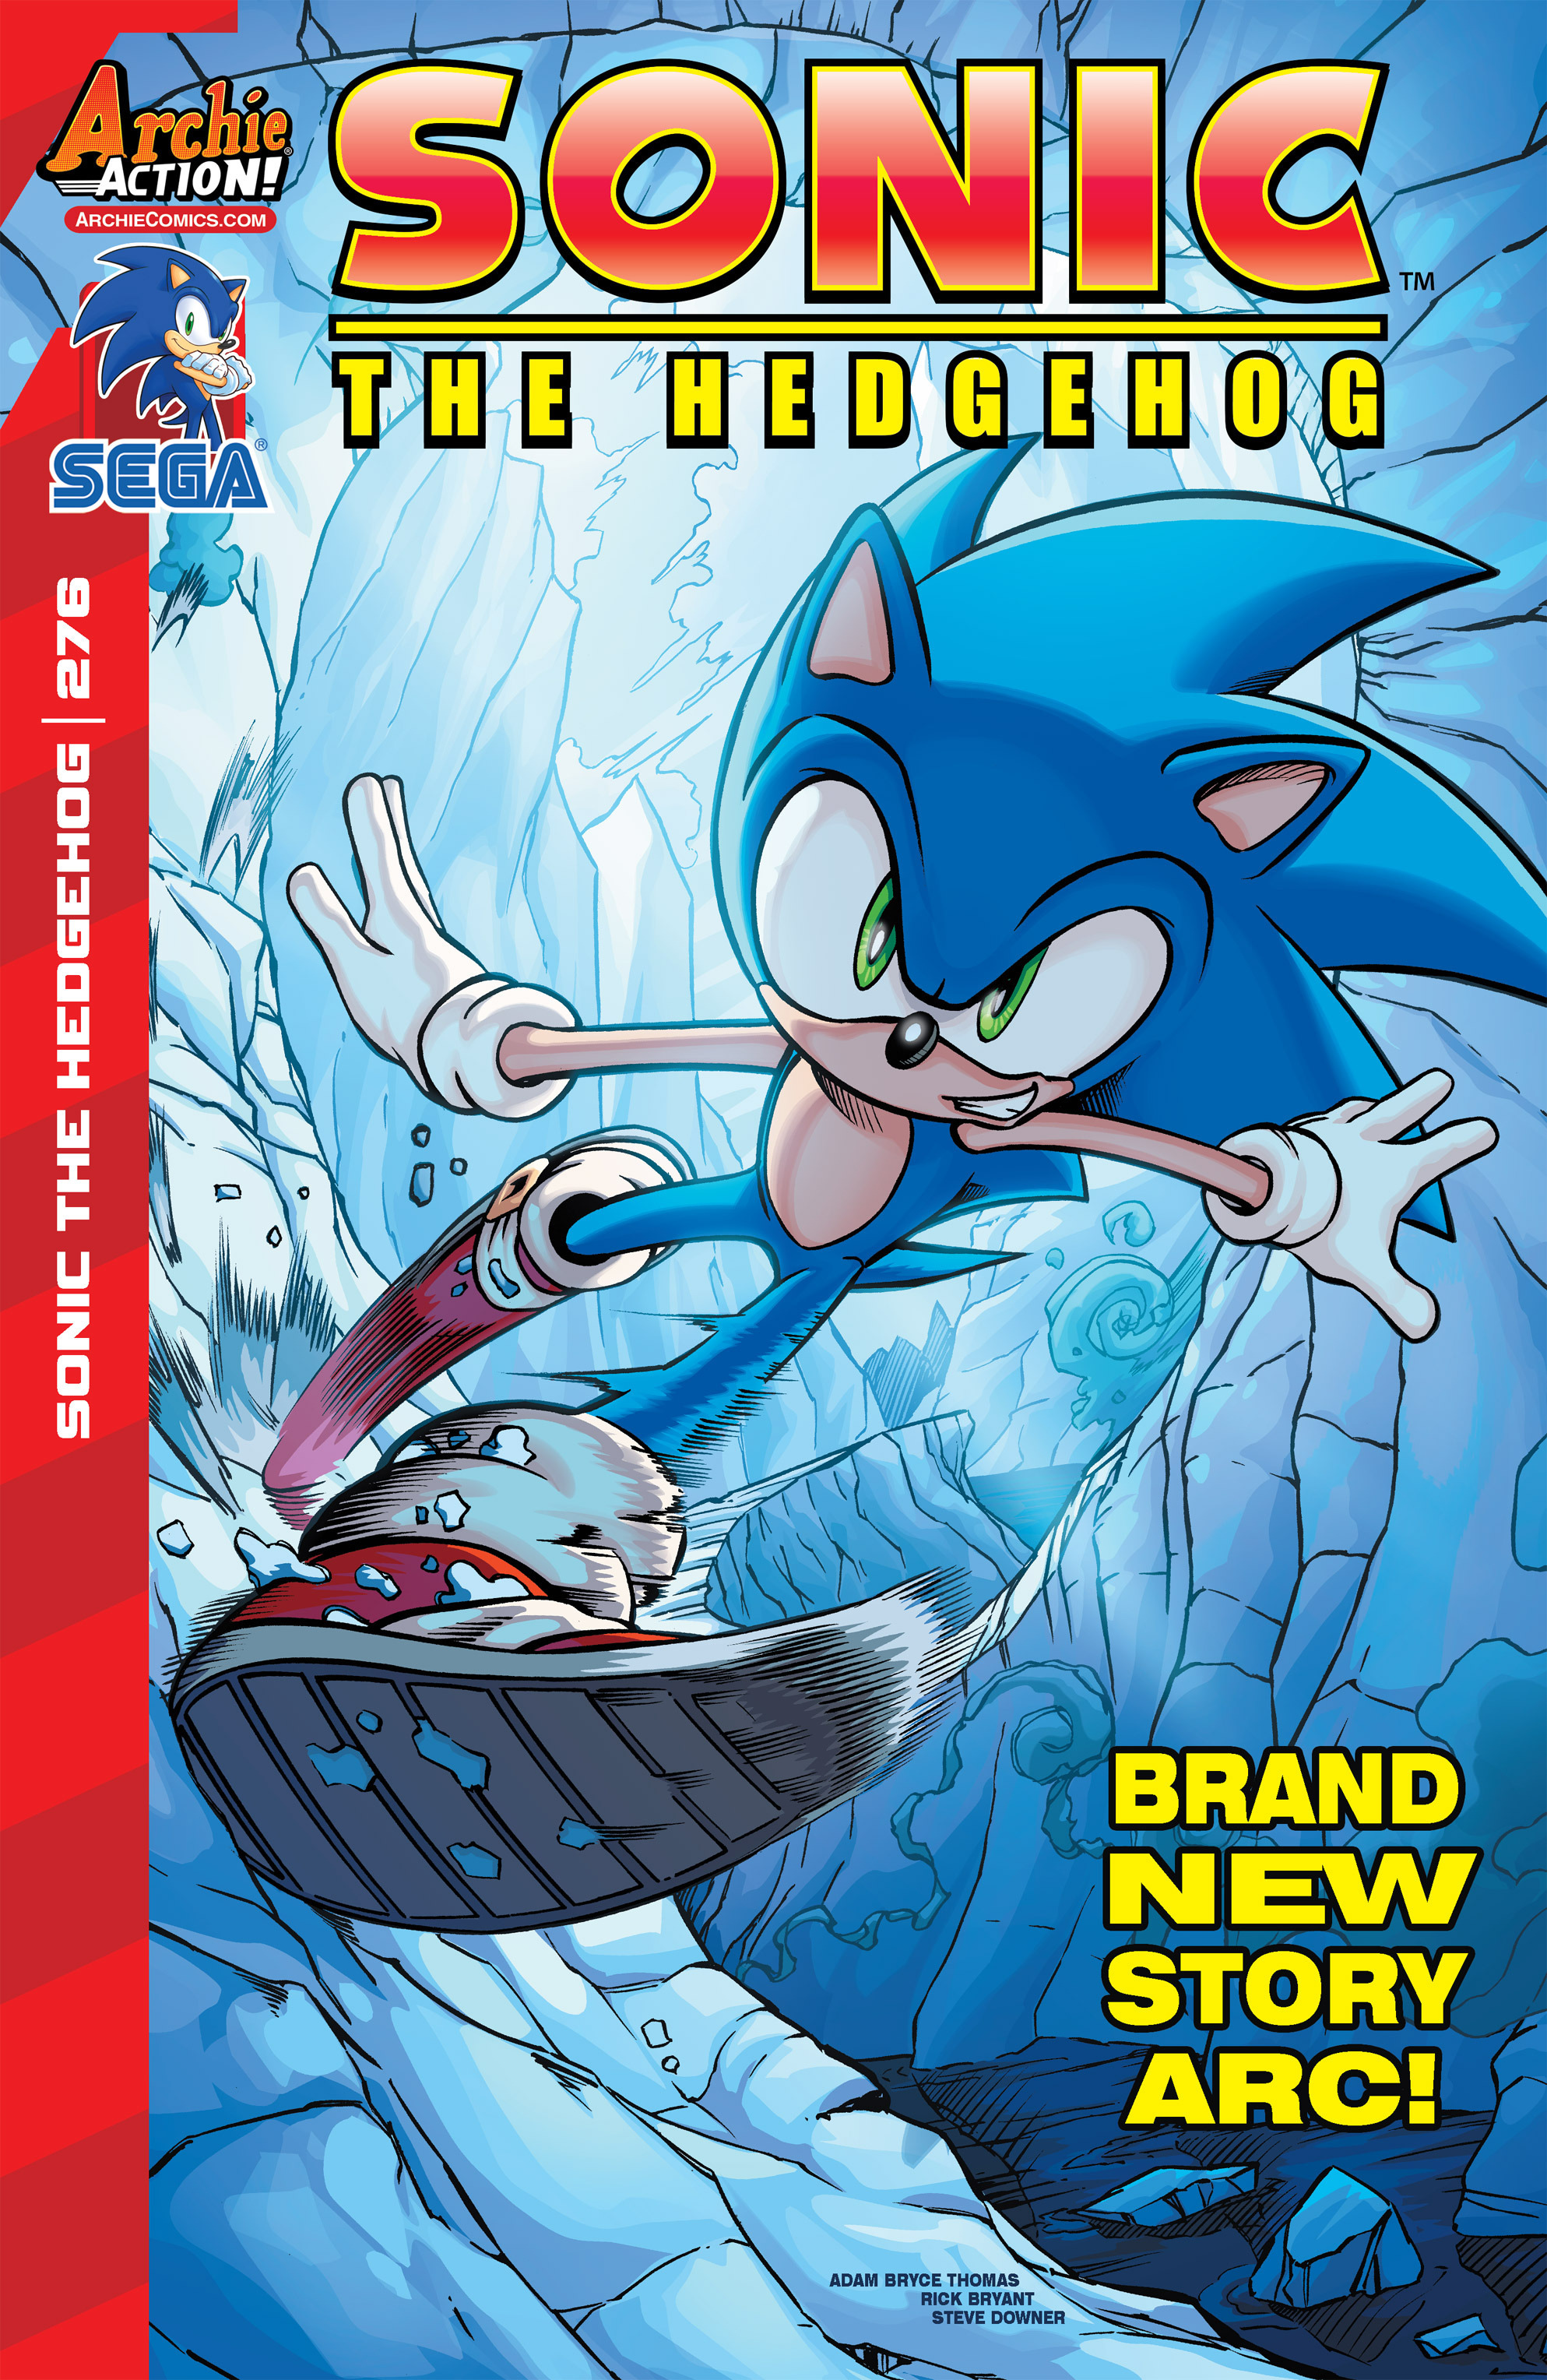 Archie Sonic the Hedgehog Issue 276